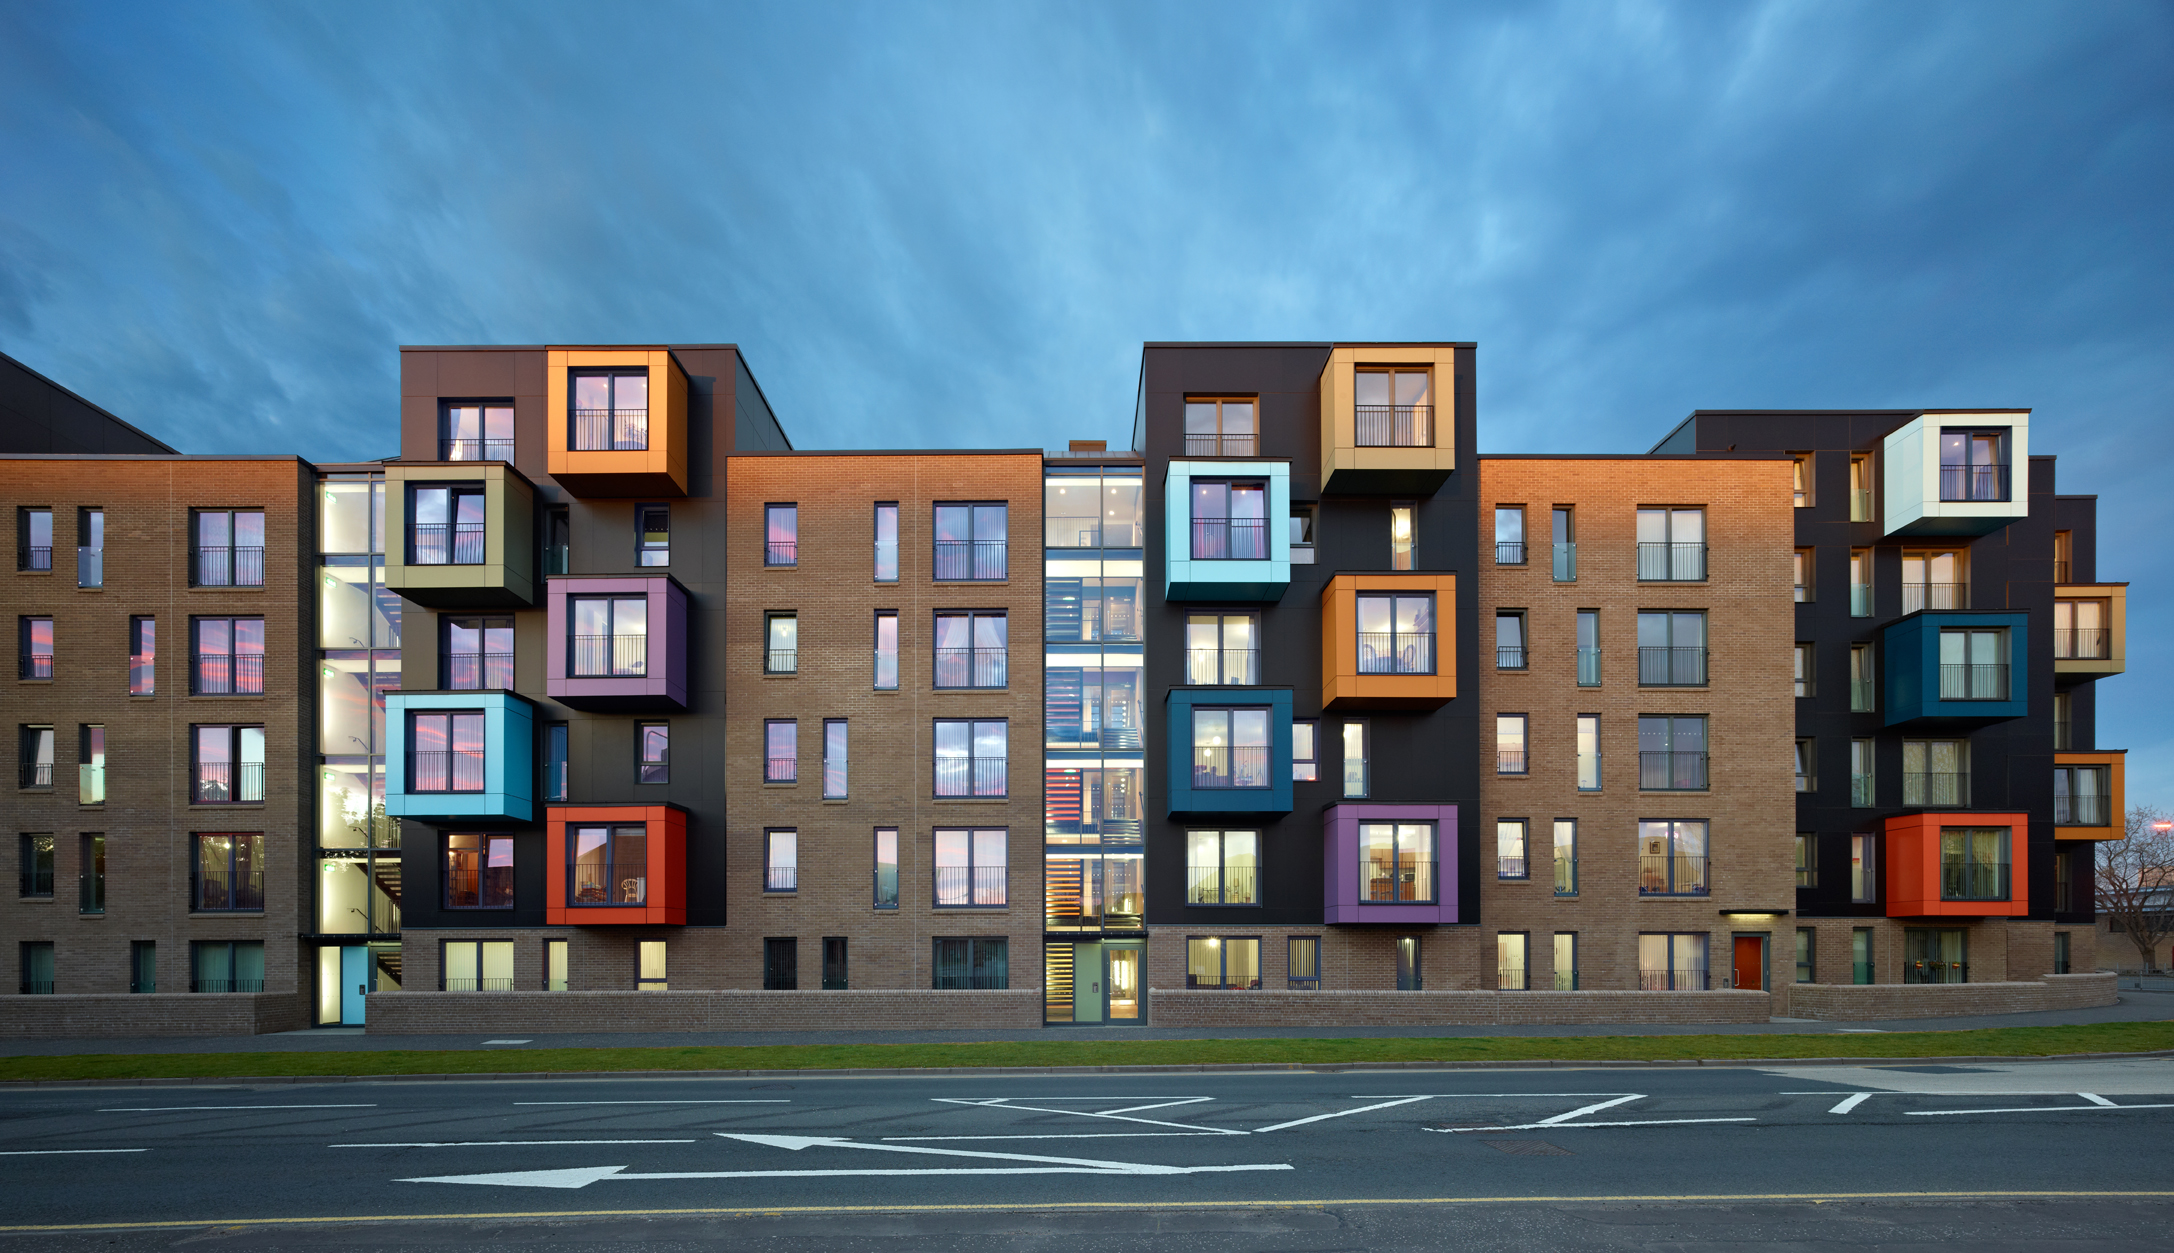 Golspie Street and Shaw Street provides 102 new homes for Govan built on a brownfield site